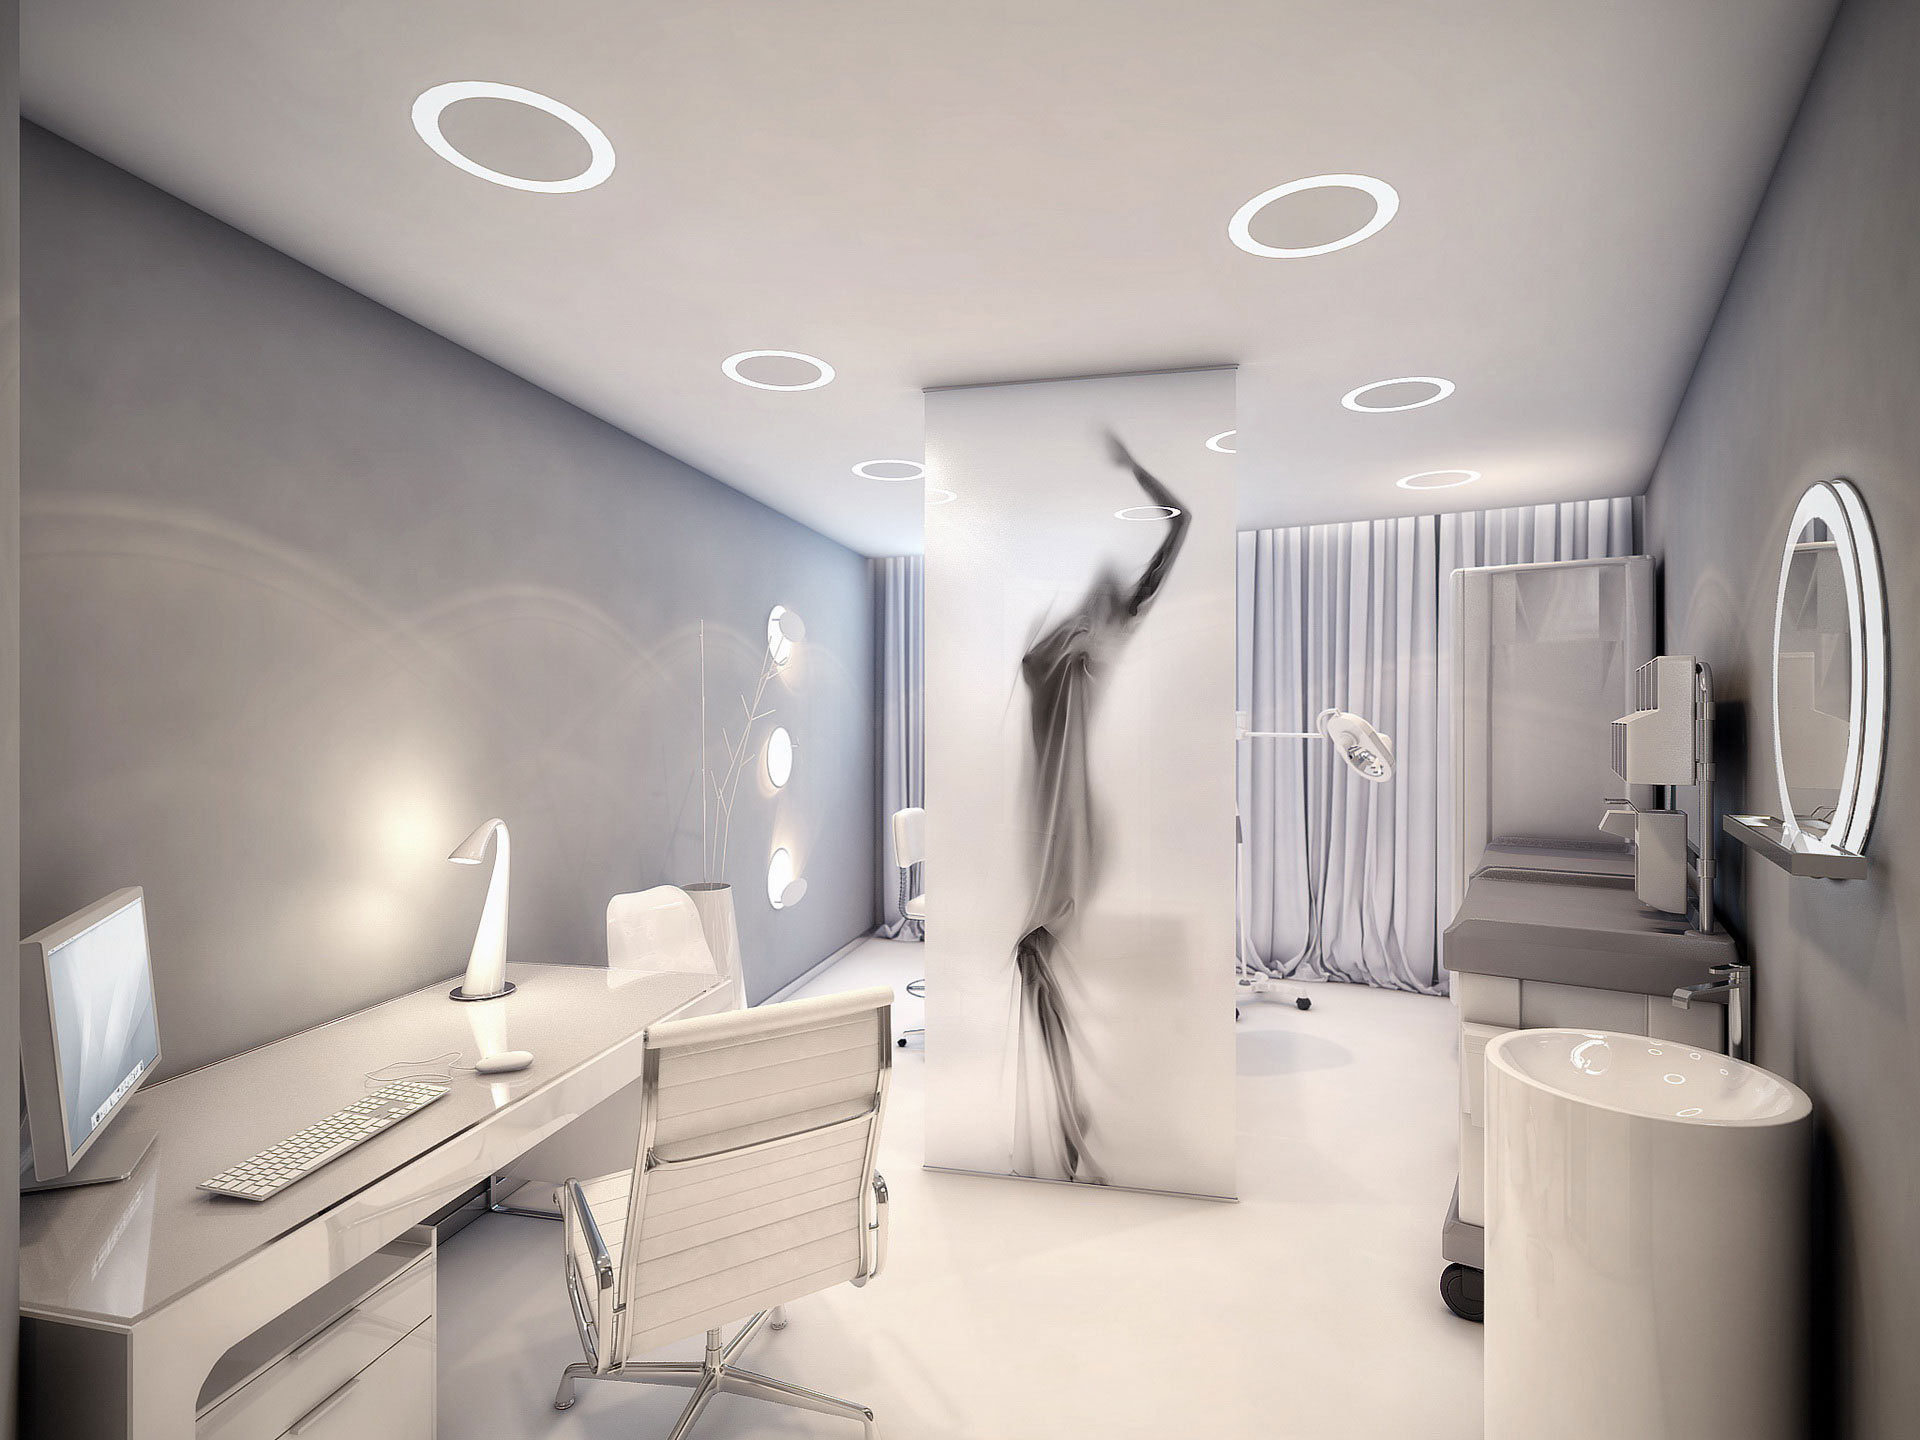 Amazing surgery clinic interiors by geometrix design for Medical office interior design